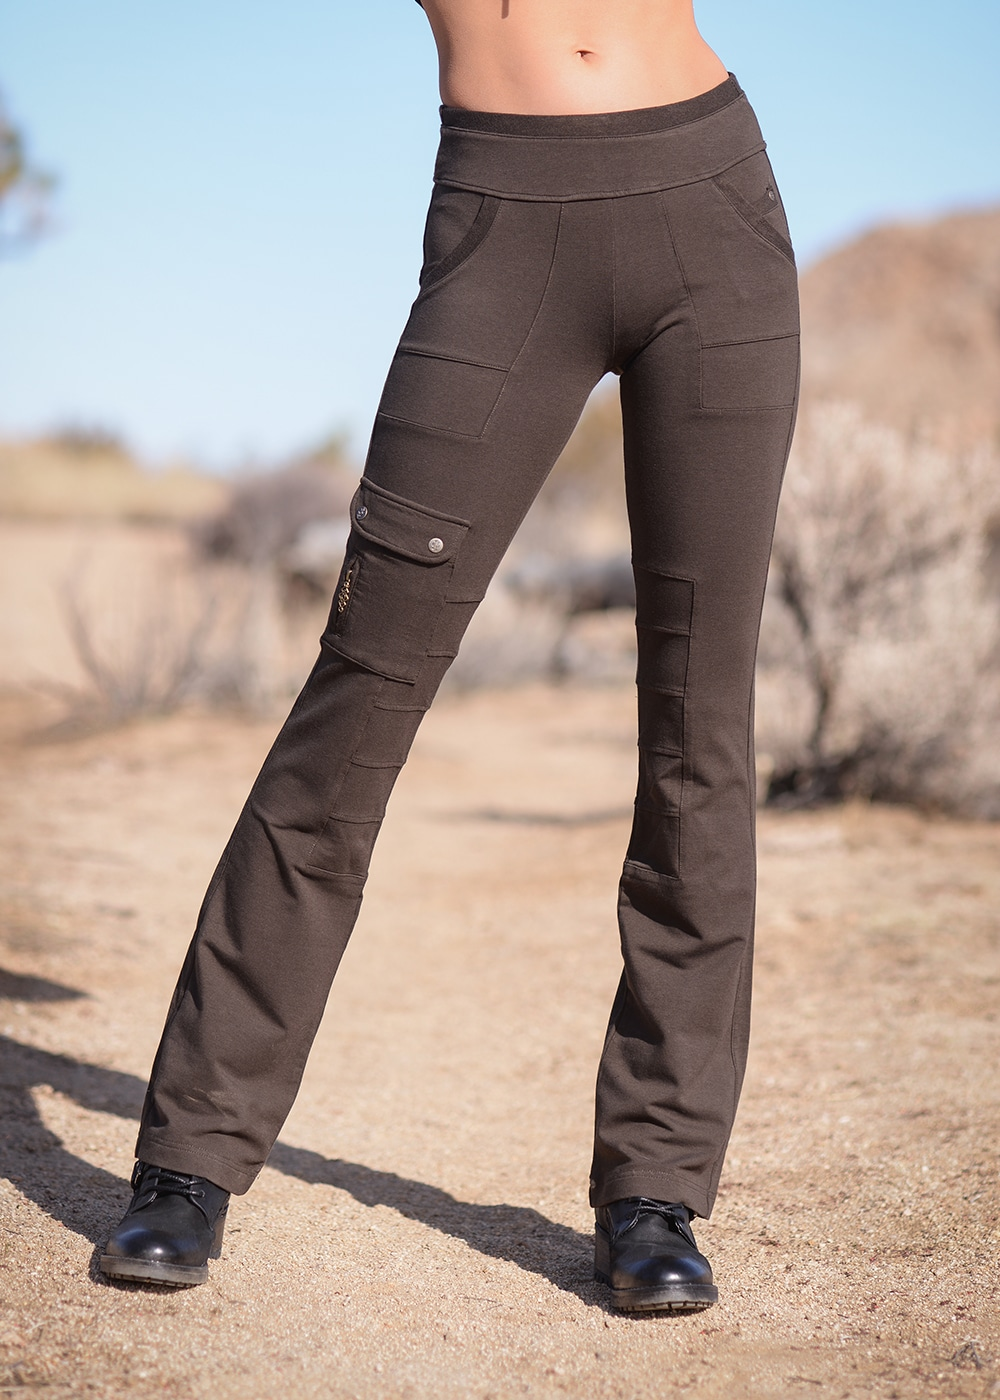 Bamboo and Organic Cotton Wander Pants in Brown by Nomads Hemp Wear